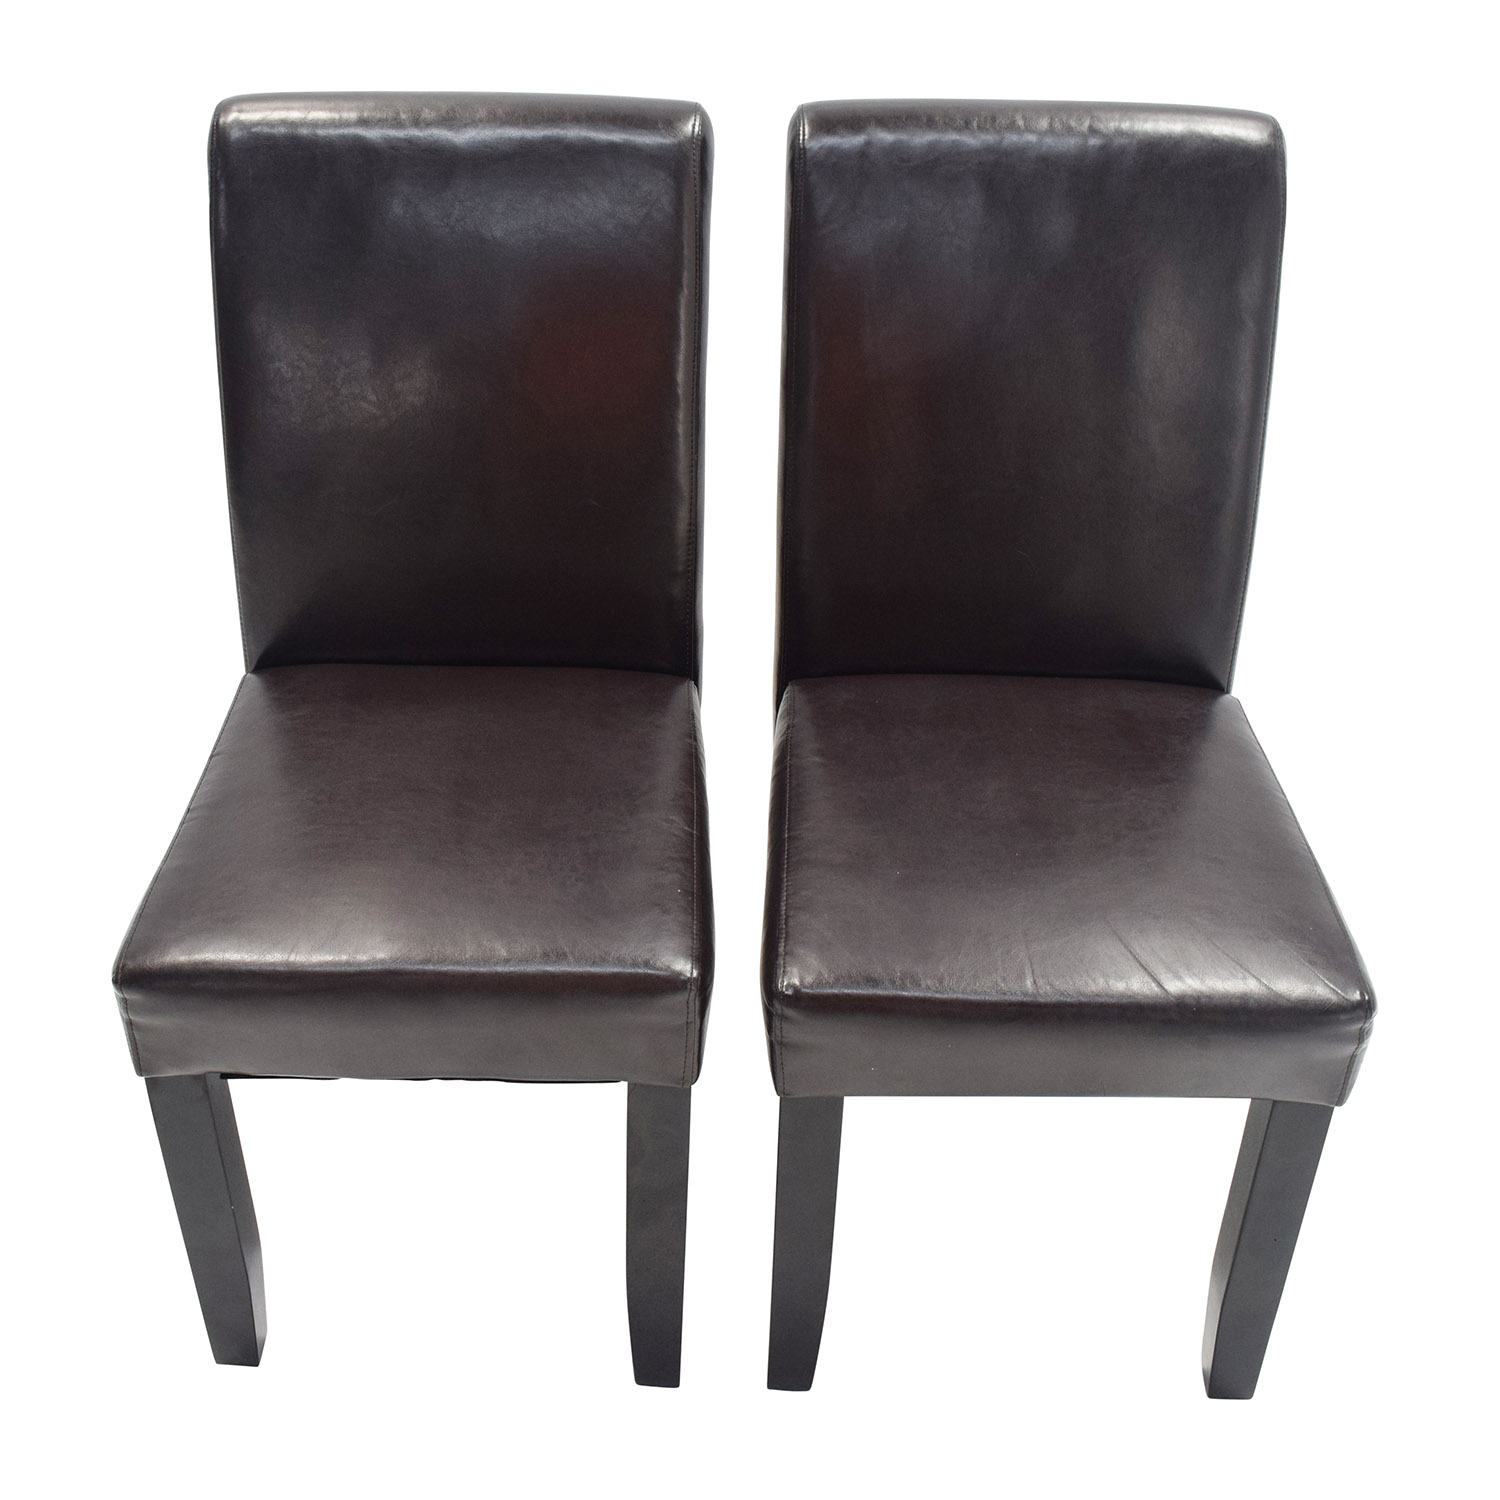 Unknown Brand Espresso Leather Dining Chairs nj